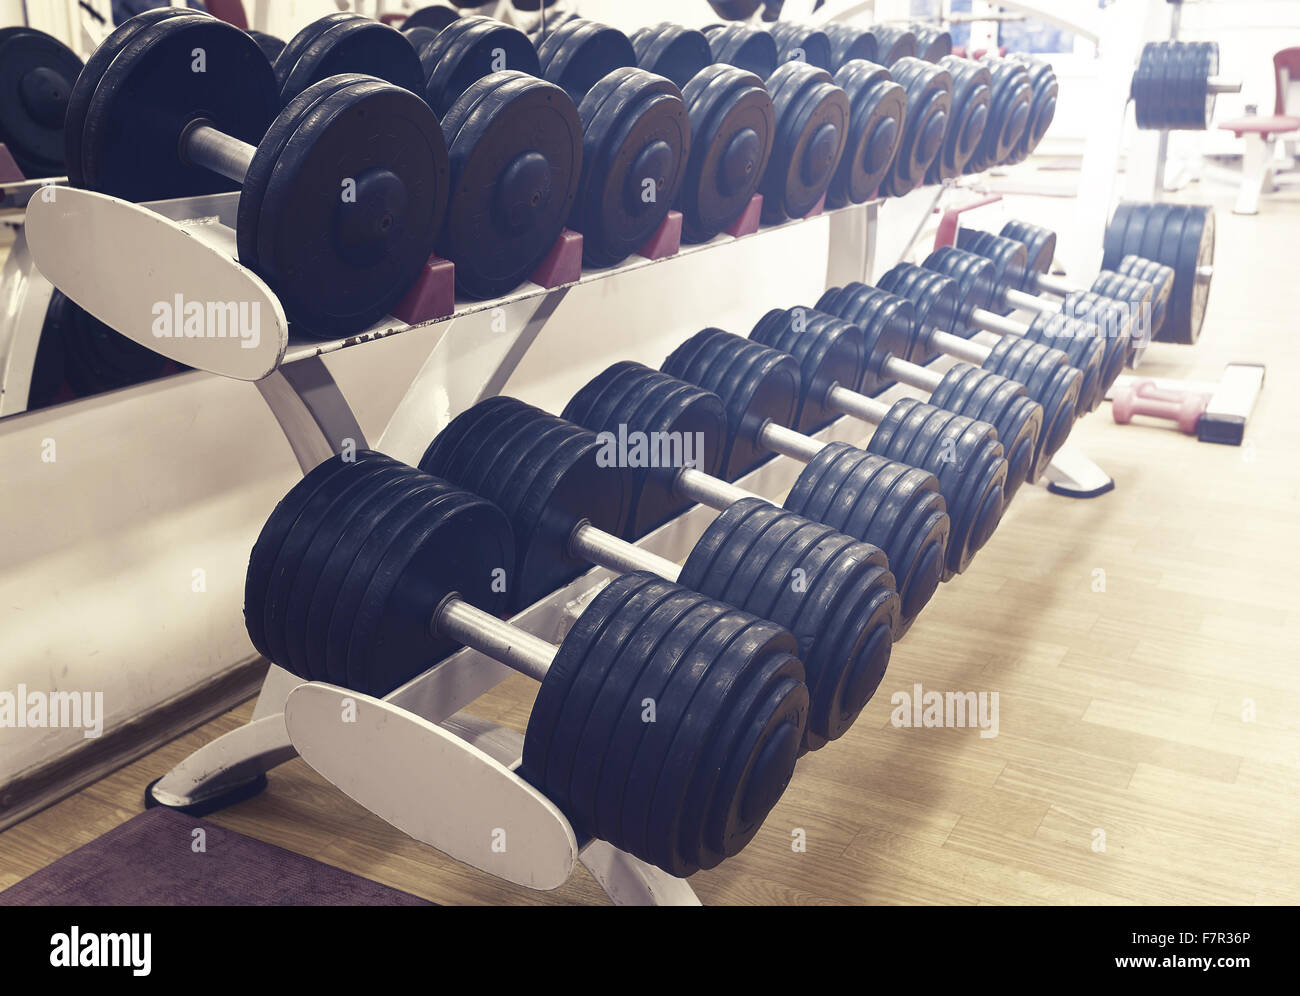 Number dumbbells to workout in the gym - Stock Image